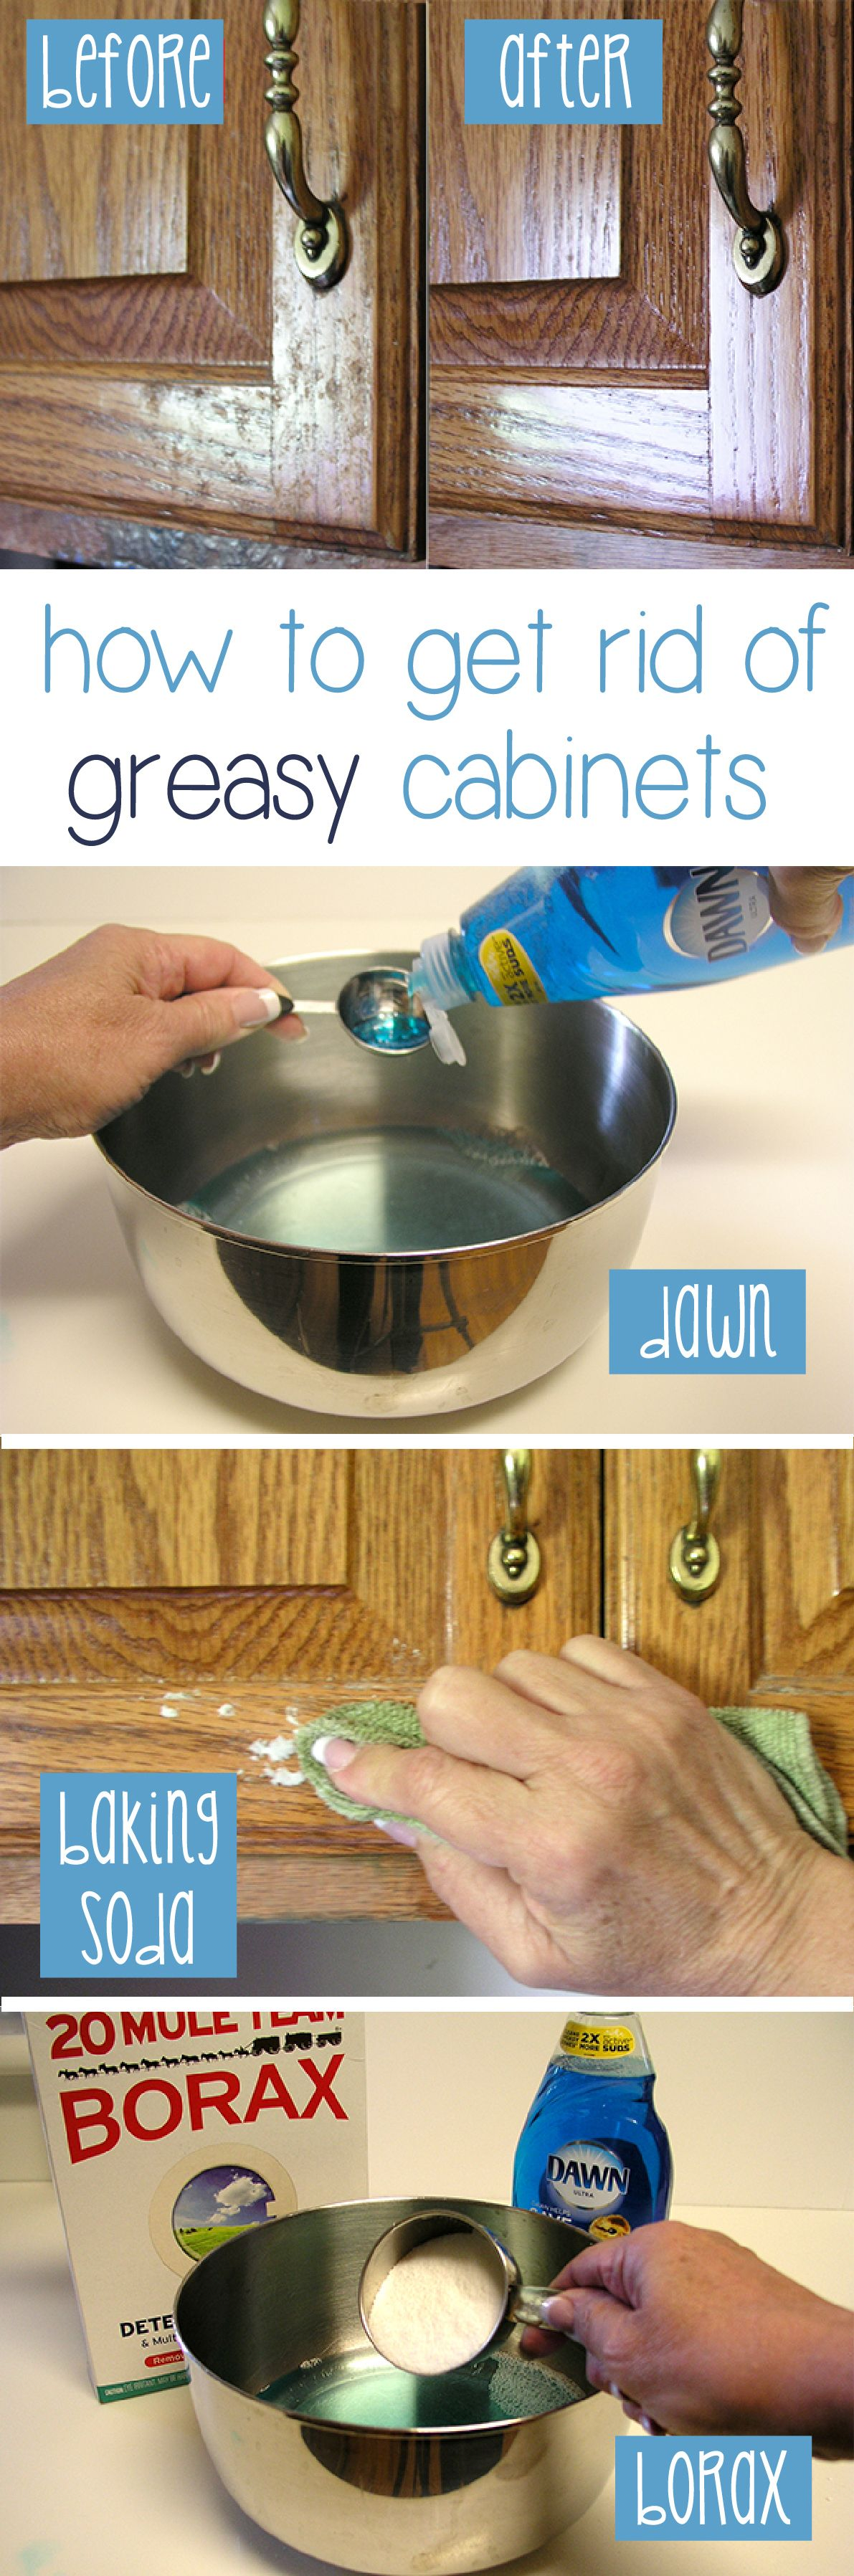 How to clean grease from kitchen cabinet doors kitchen cabinet